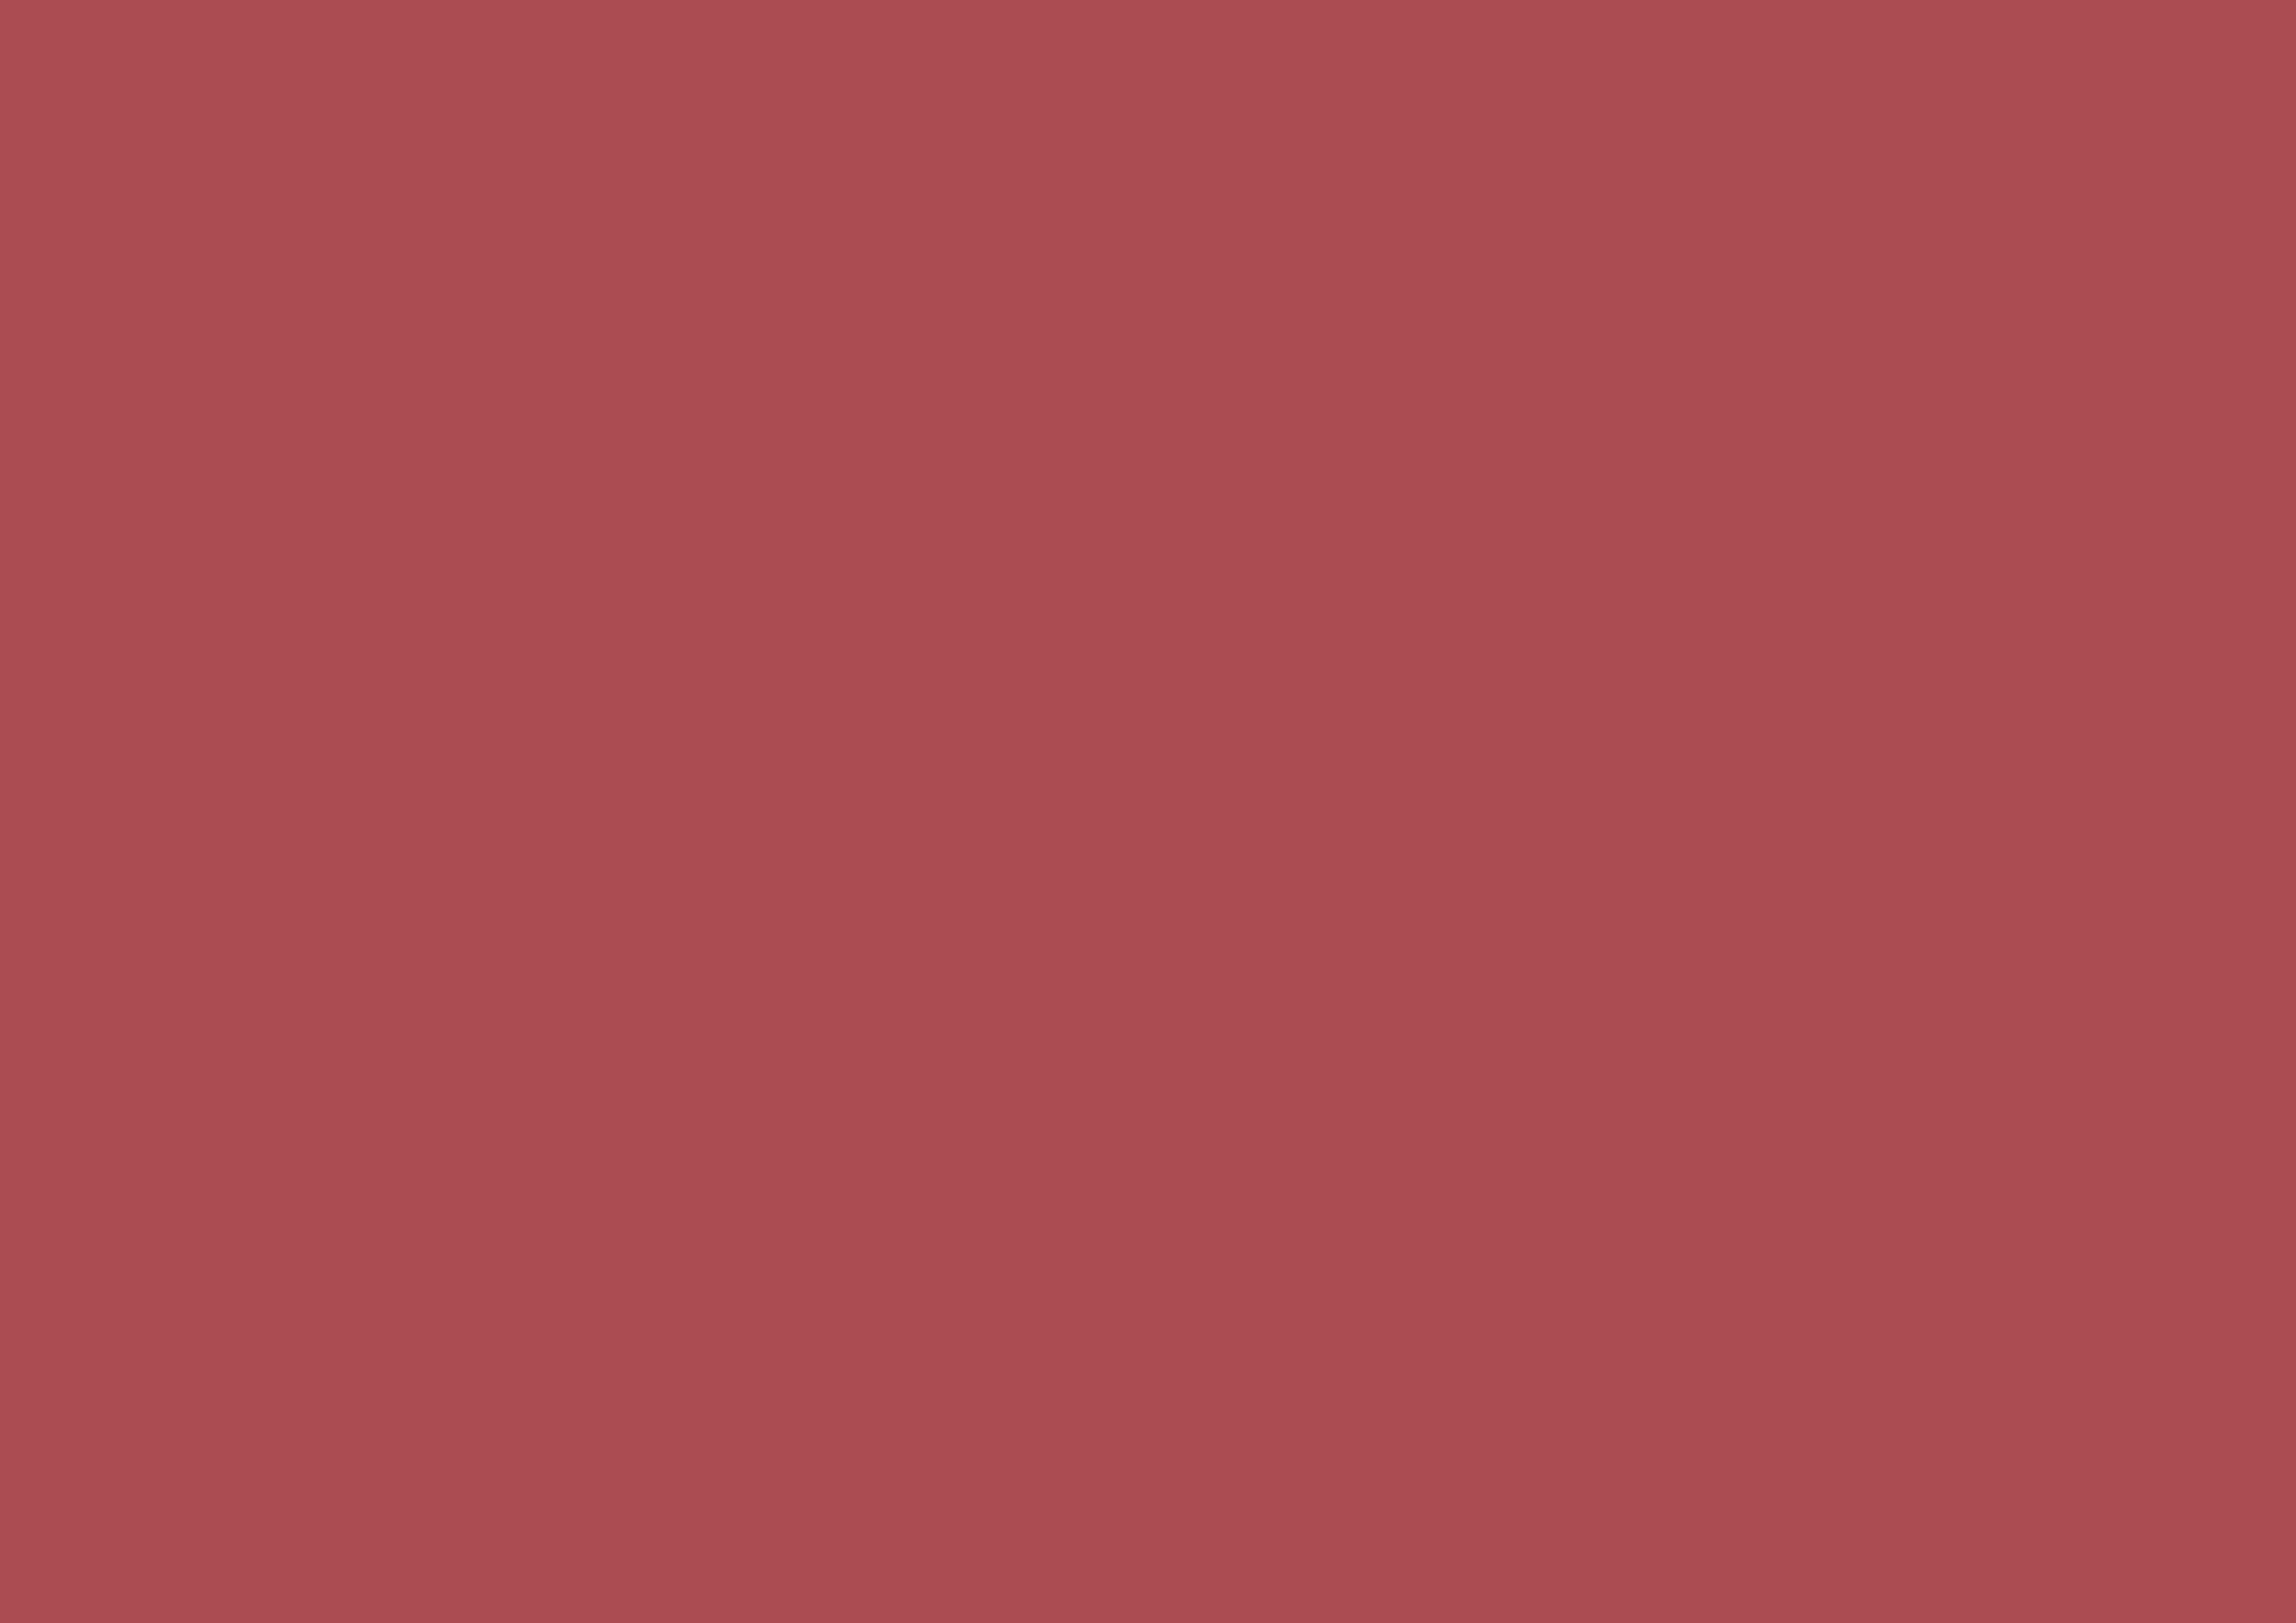 3508x2480 English Red Solid Color Background